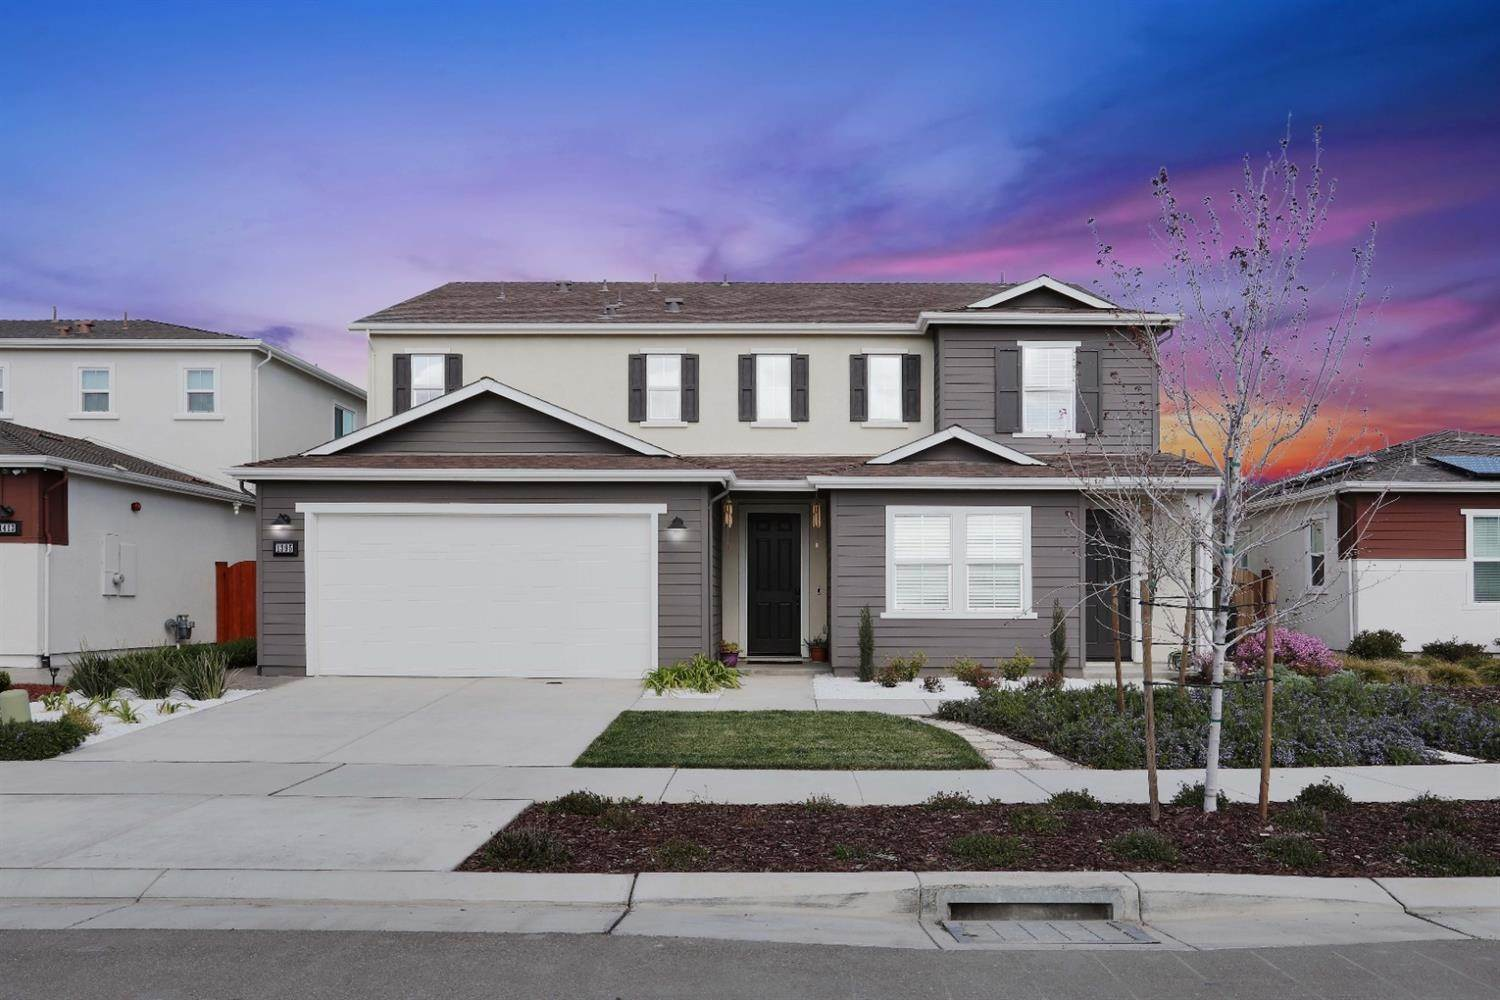 Single Family Homes for Active at 1395 Huntington Way Lathrop, California 95330 United States